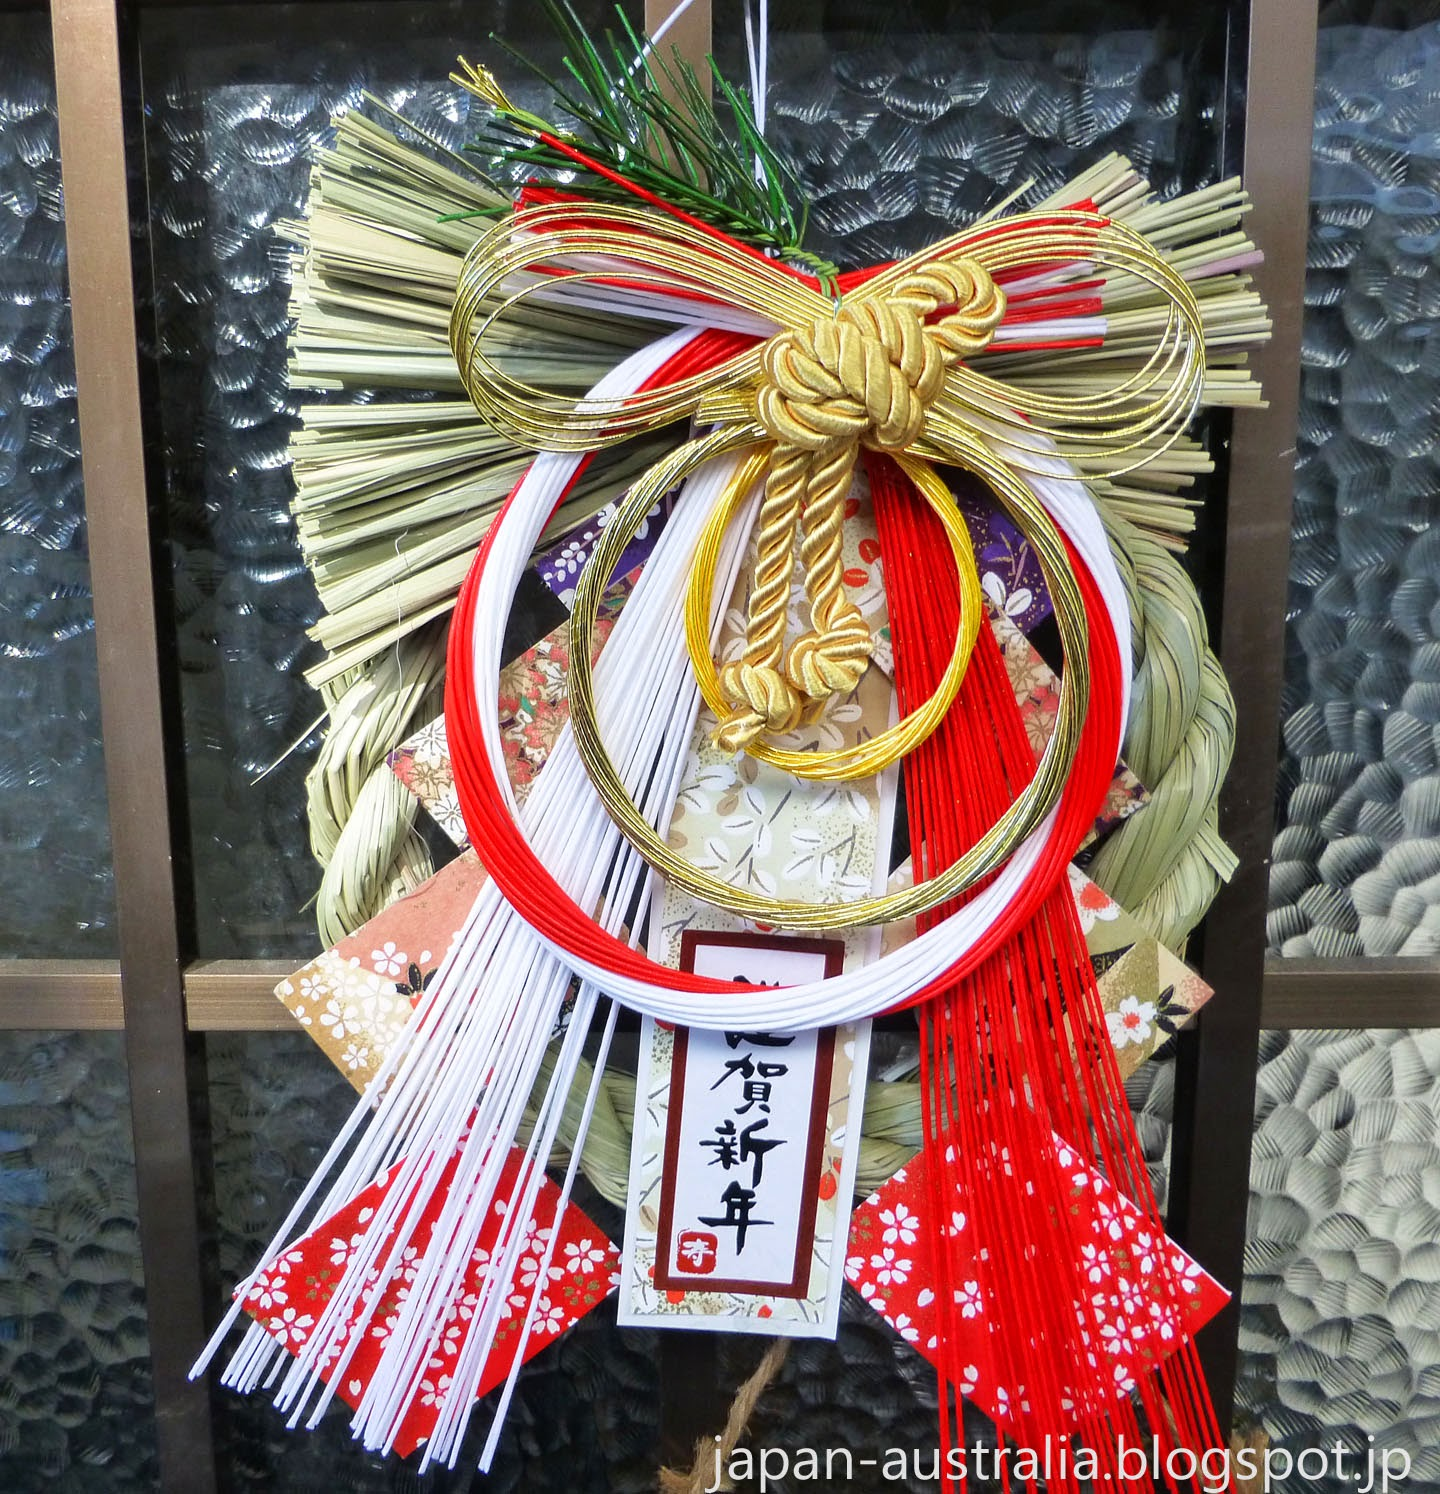 Japan Australia: New Year's Traditions and Customs in Japan